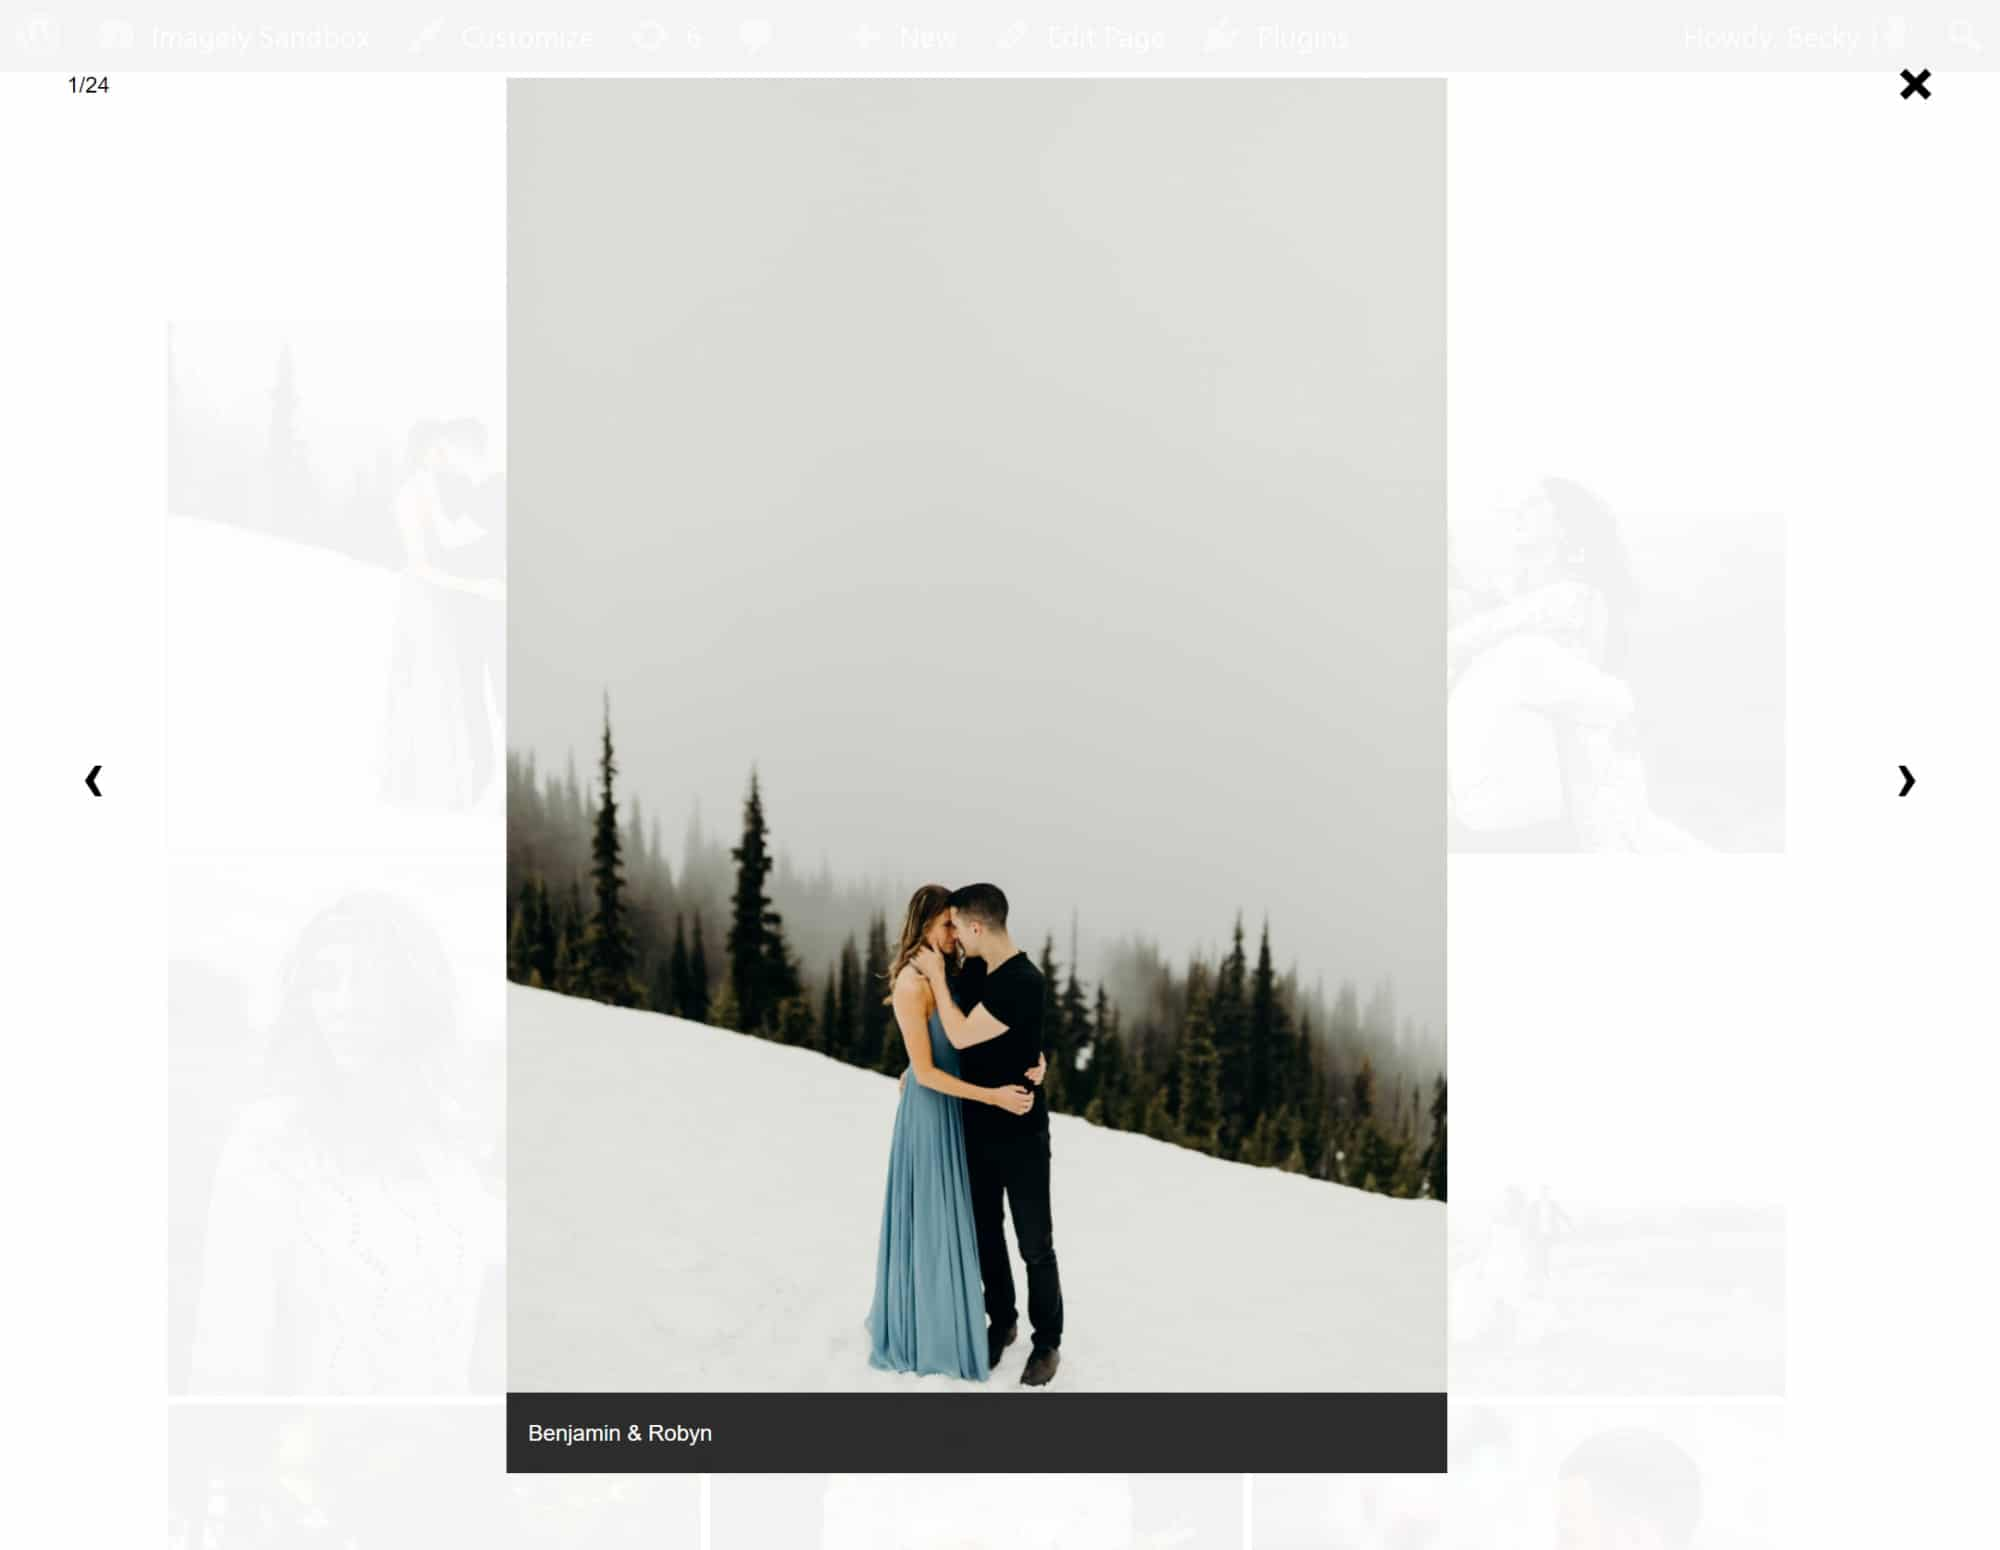 A screenshot of our Lightbox Effect showing the caption underneath, photo: a couple kissing in the snow